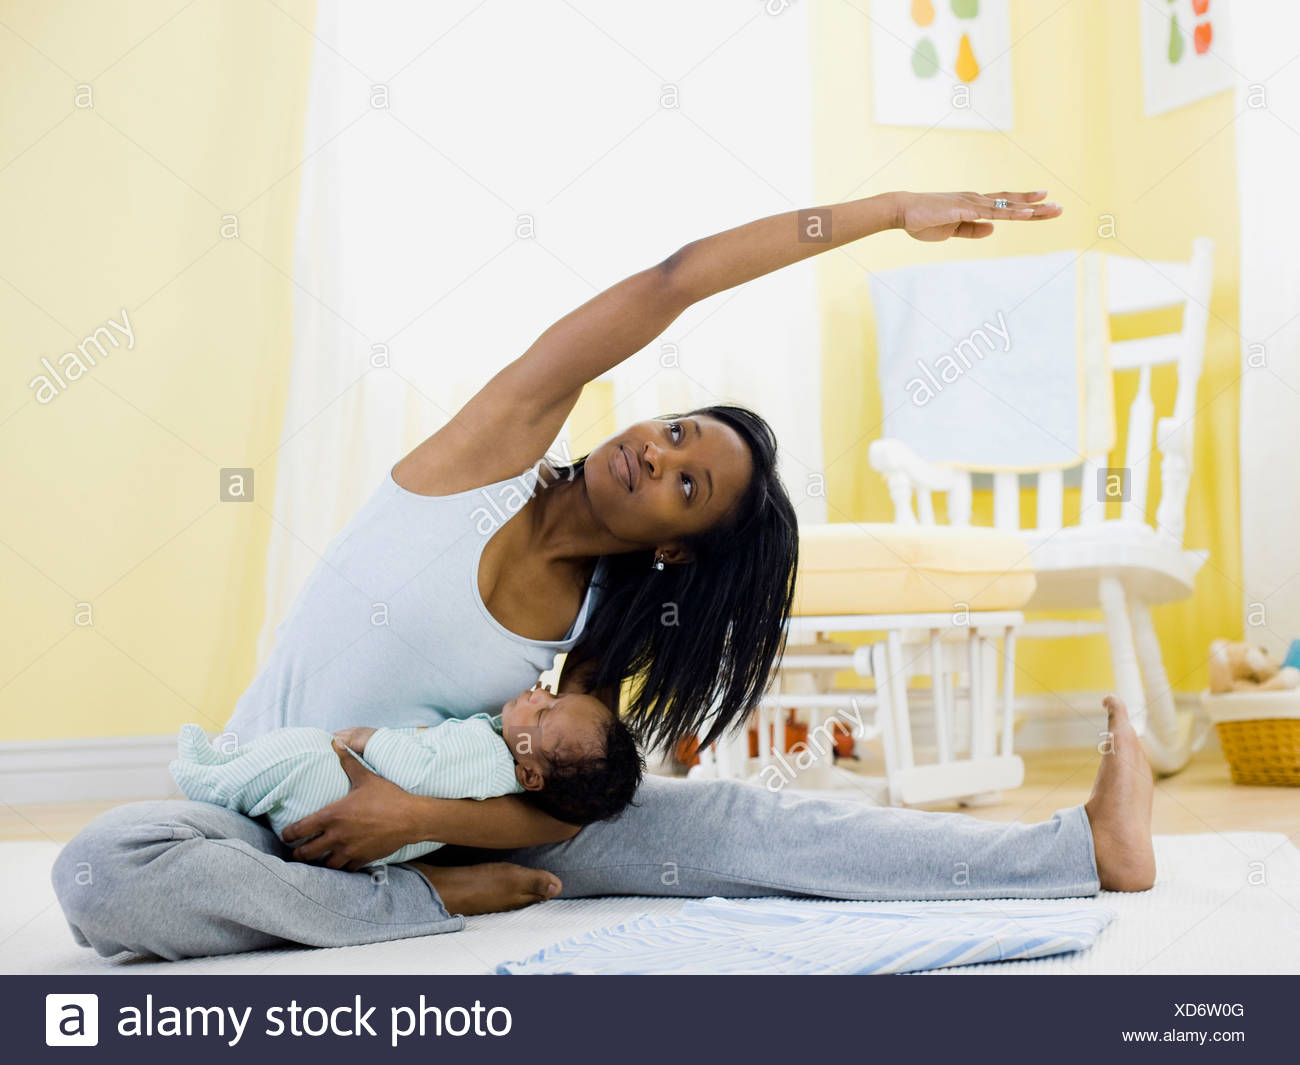 mother and baby - Stock Image